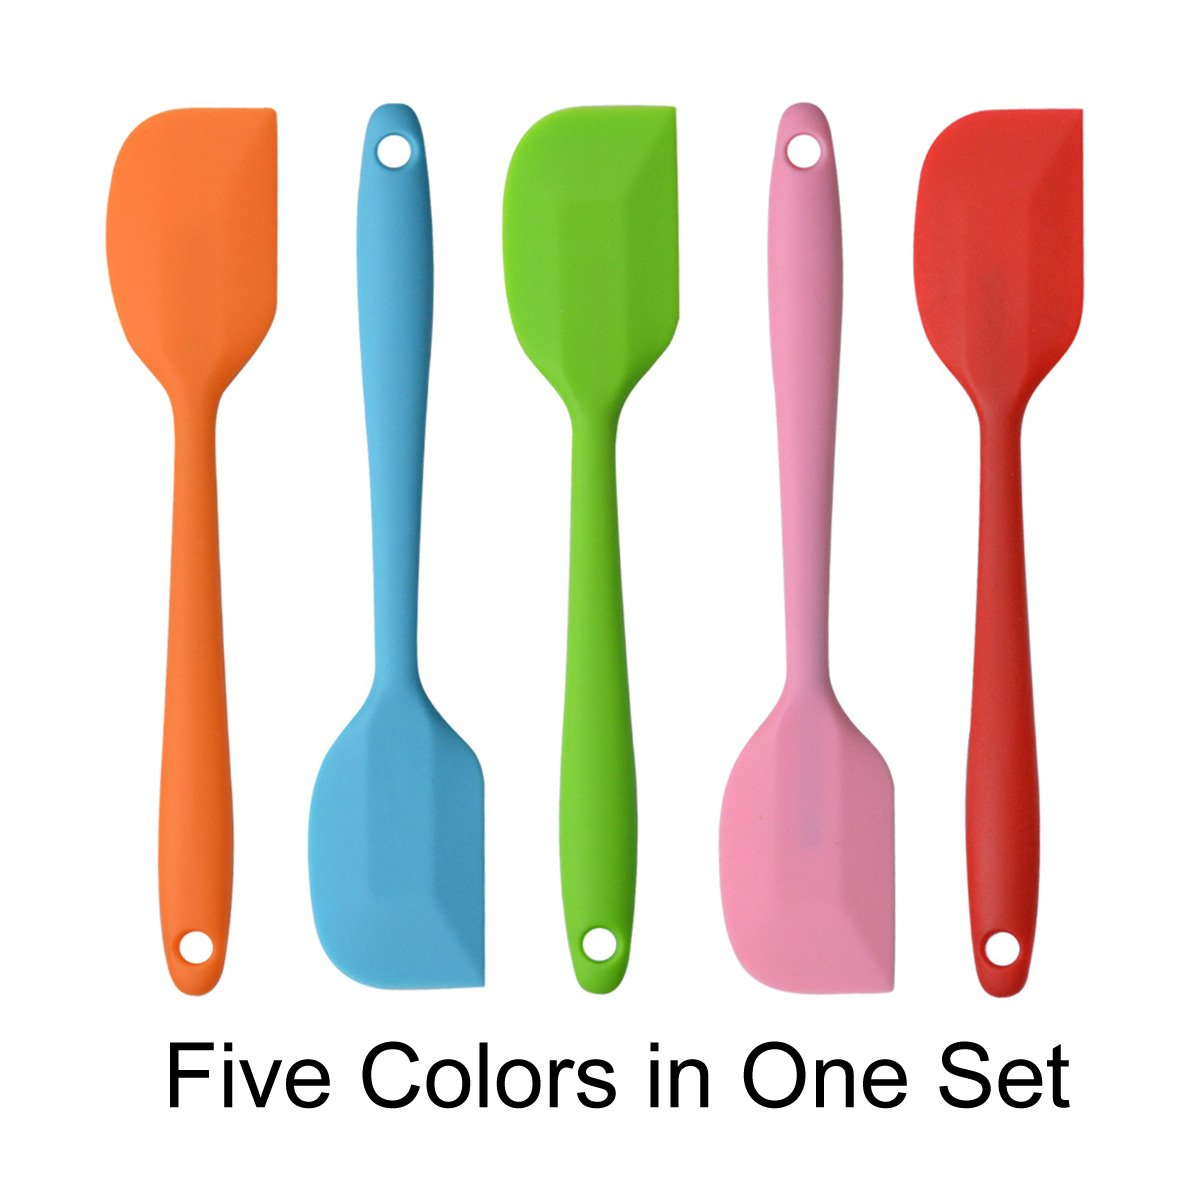 TYHY 8.5 inch Silicone Spatula One Piece Design-Heat Resistant Kitchen Spatulas For Cake Cream Pastry Butter Batter Mixing Cooking Baking-Essential Cooking Gadget (Random Five color)